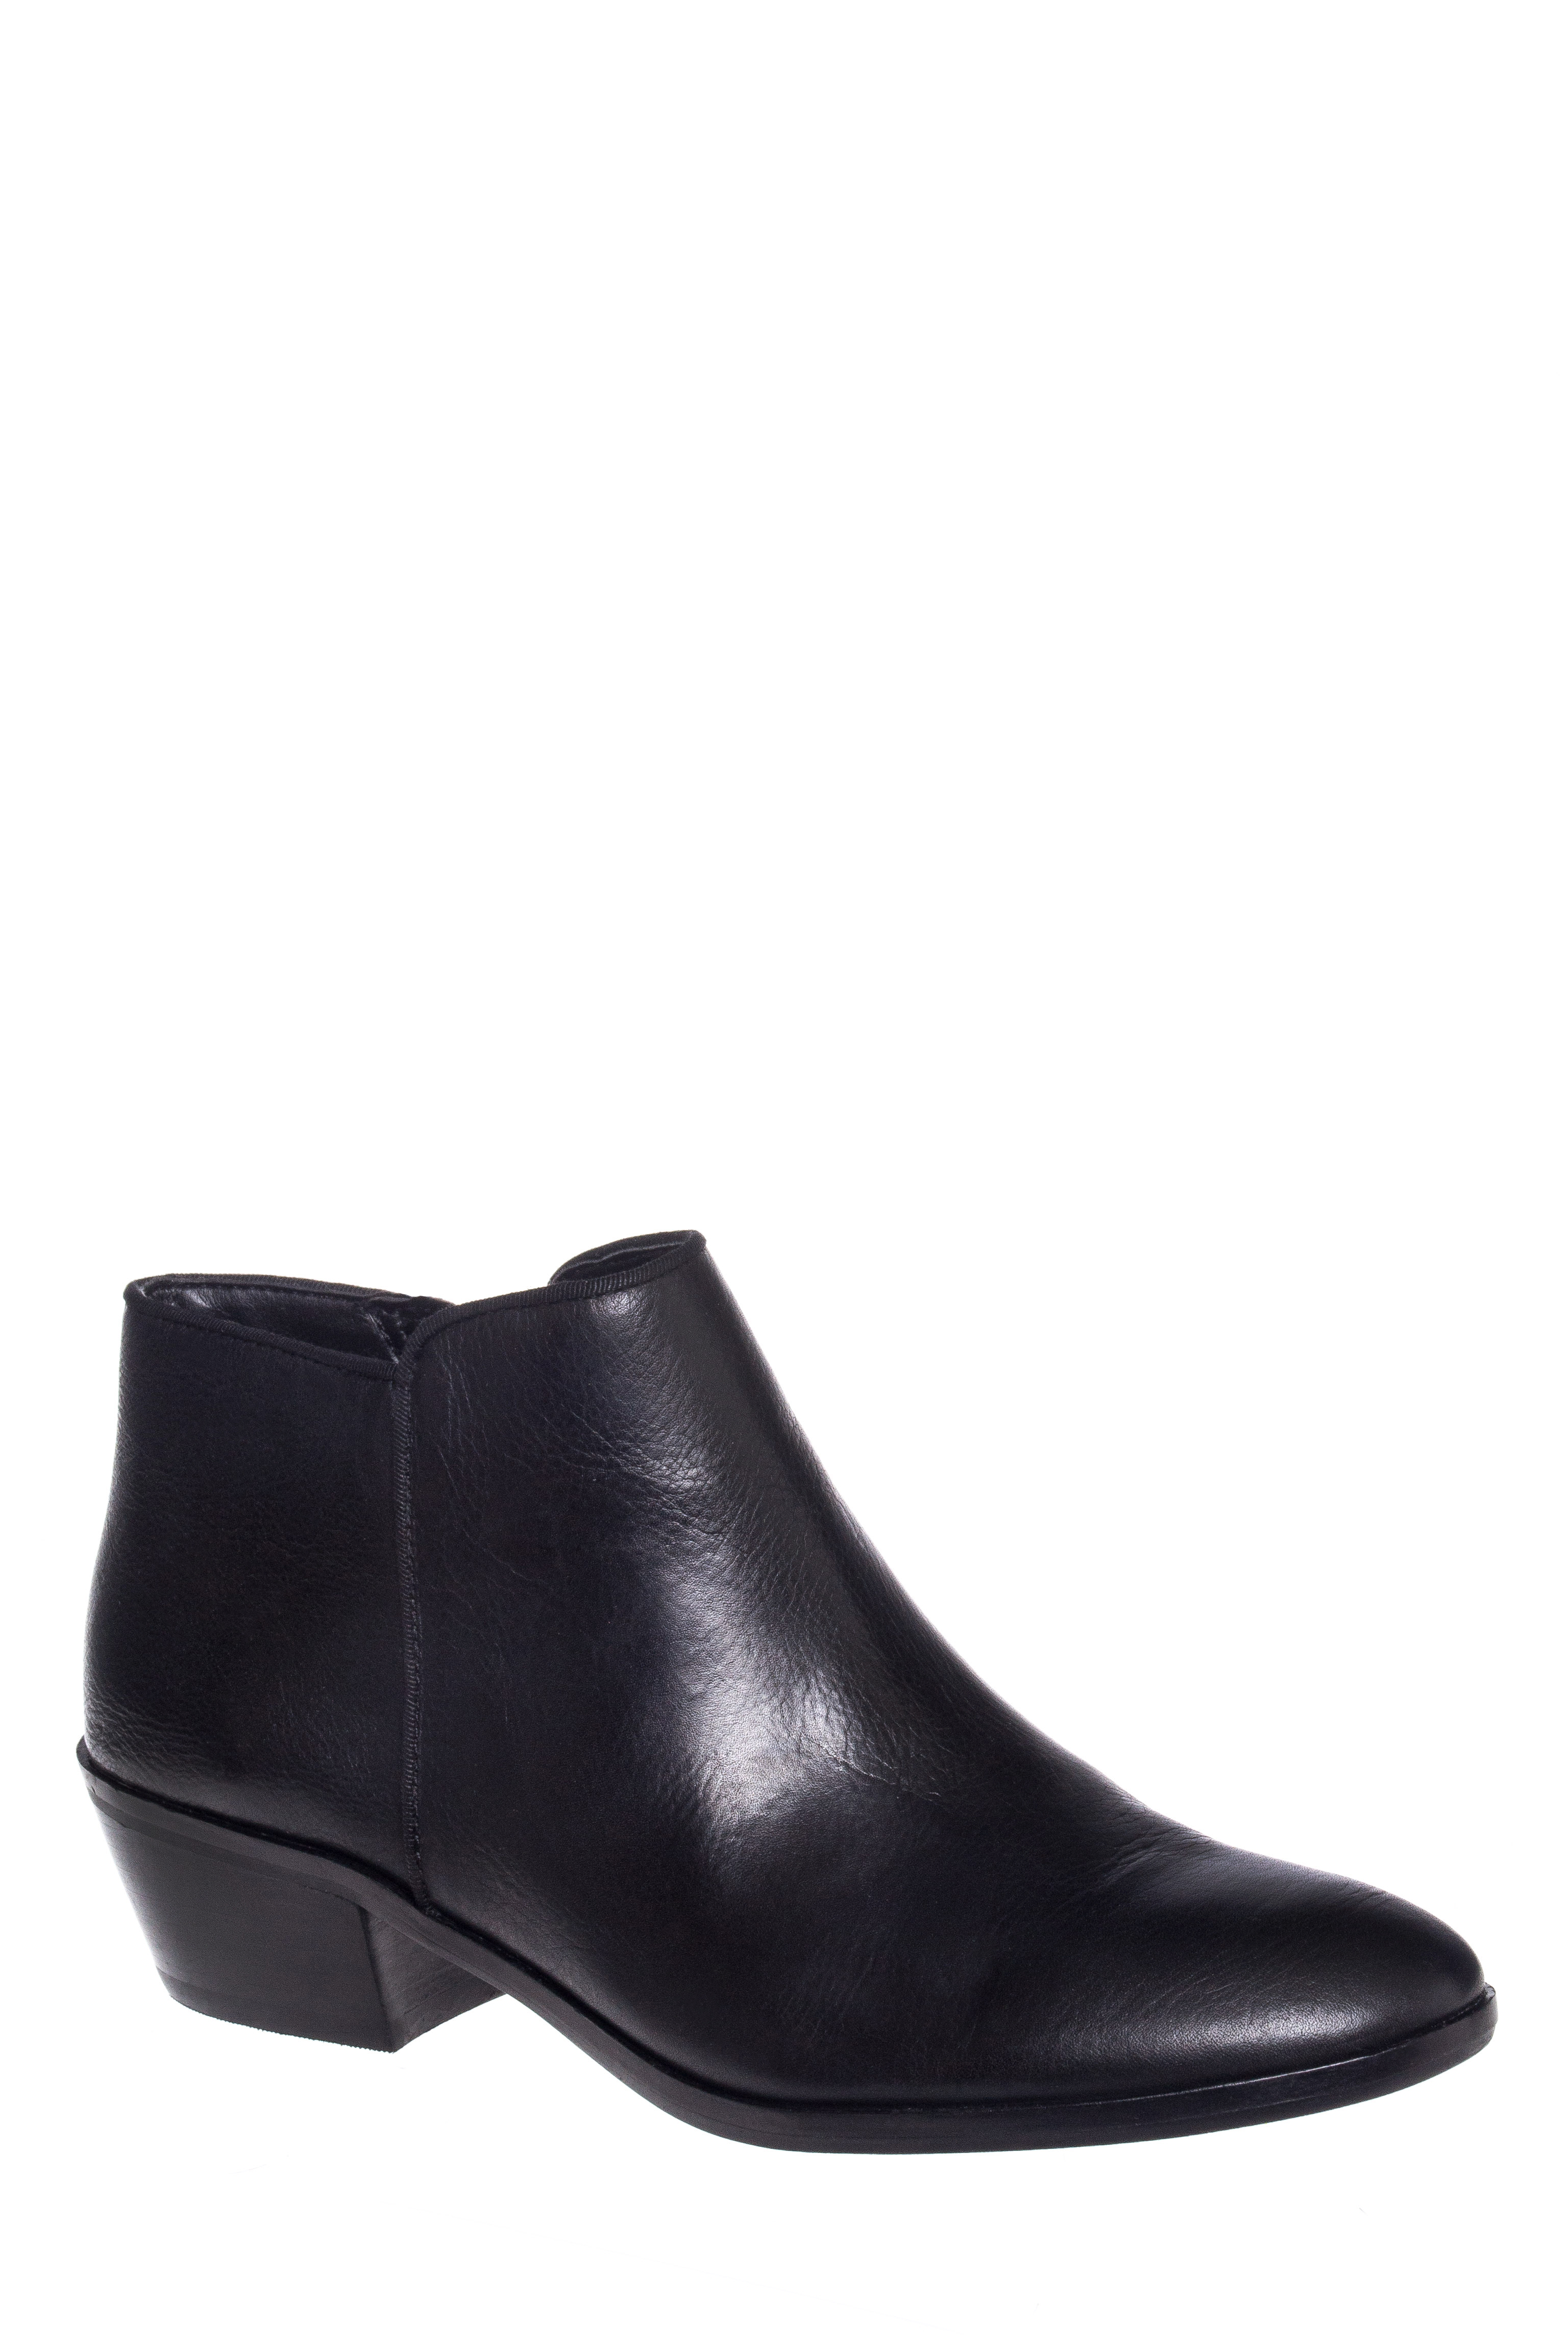 Sam Edelman Petty Low Heel Booties